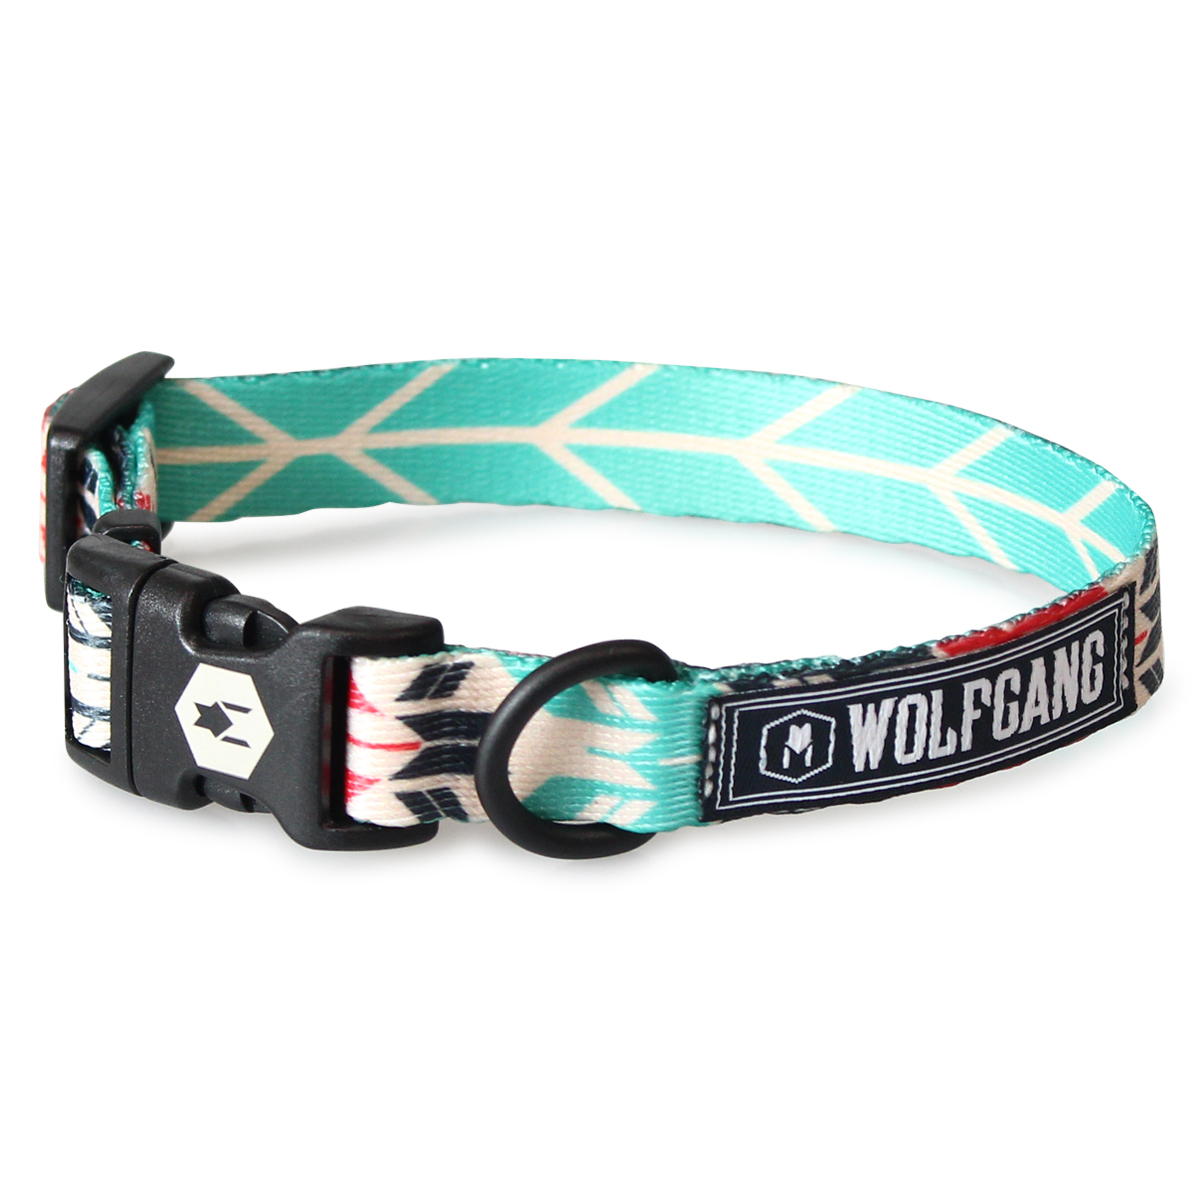 FurTrader COLLAR ( S size )